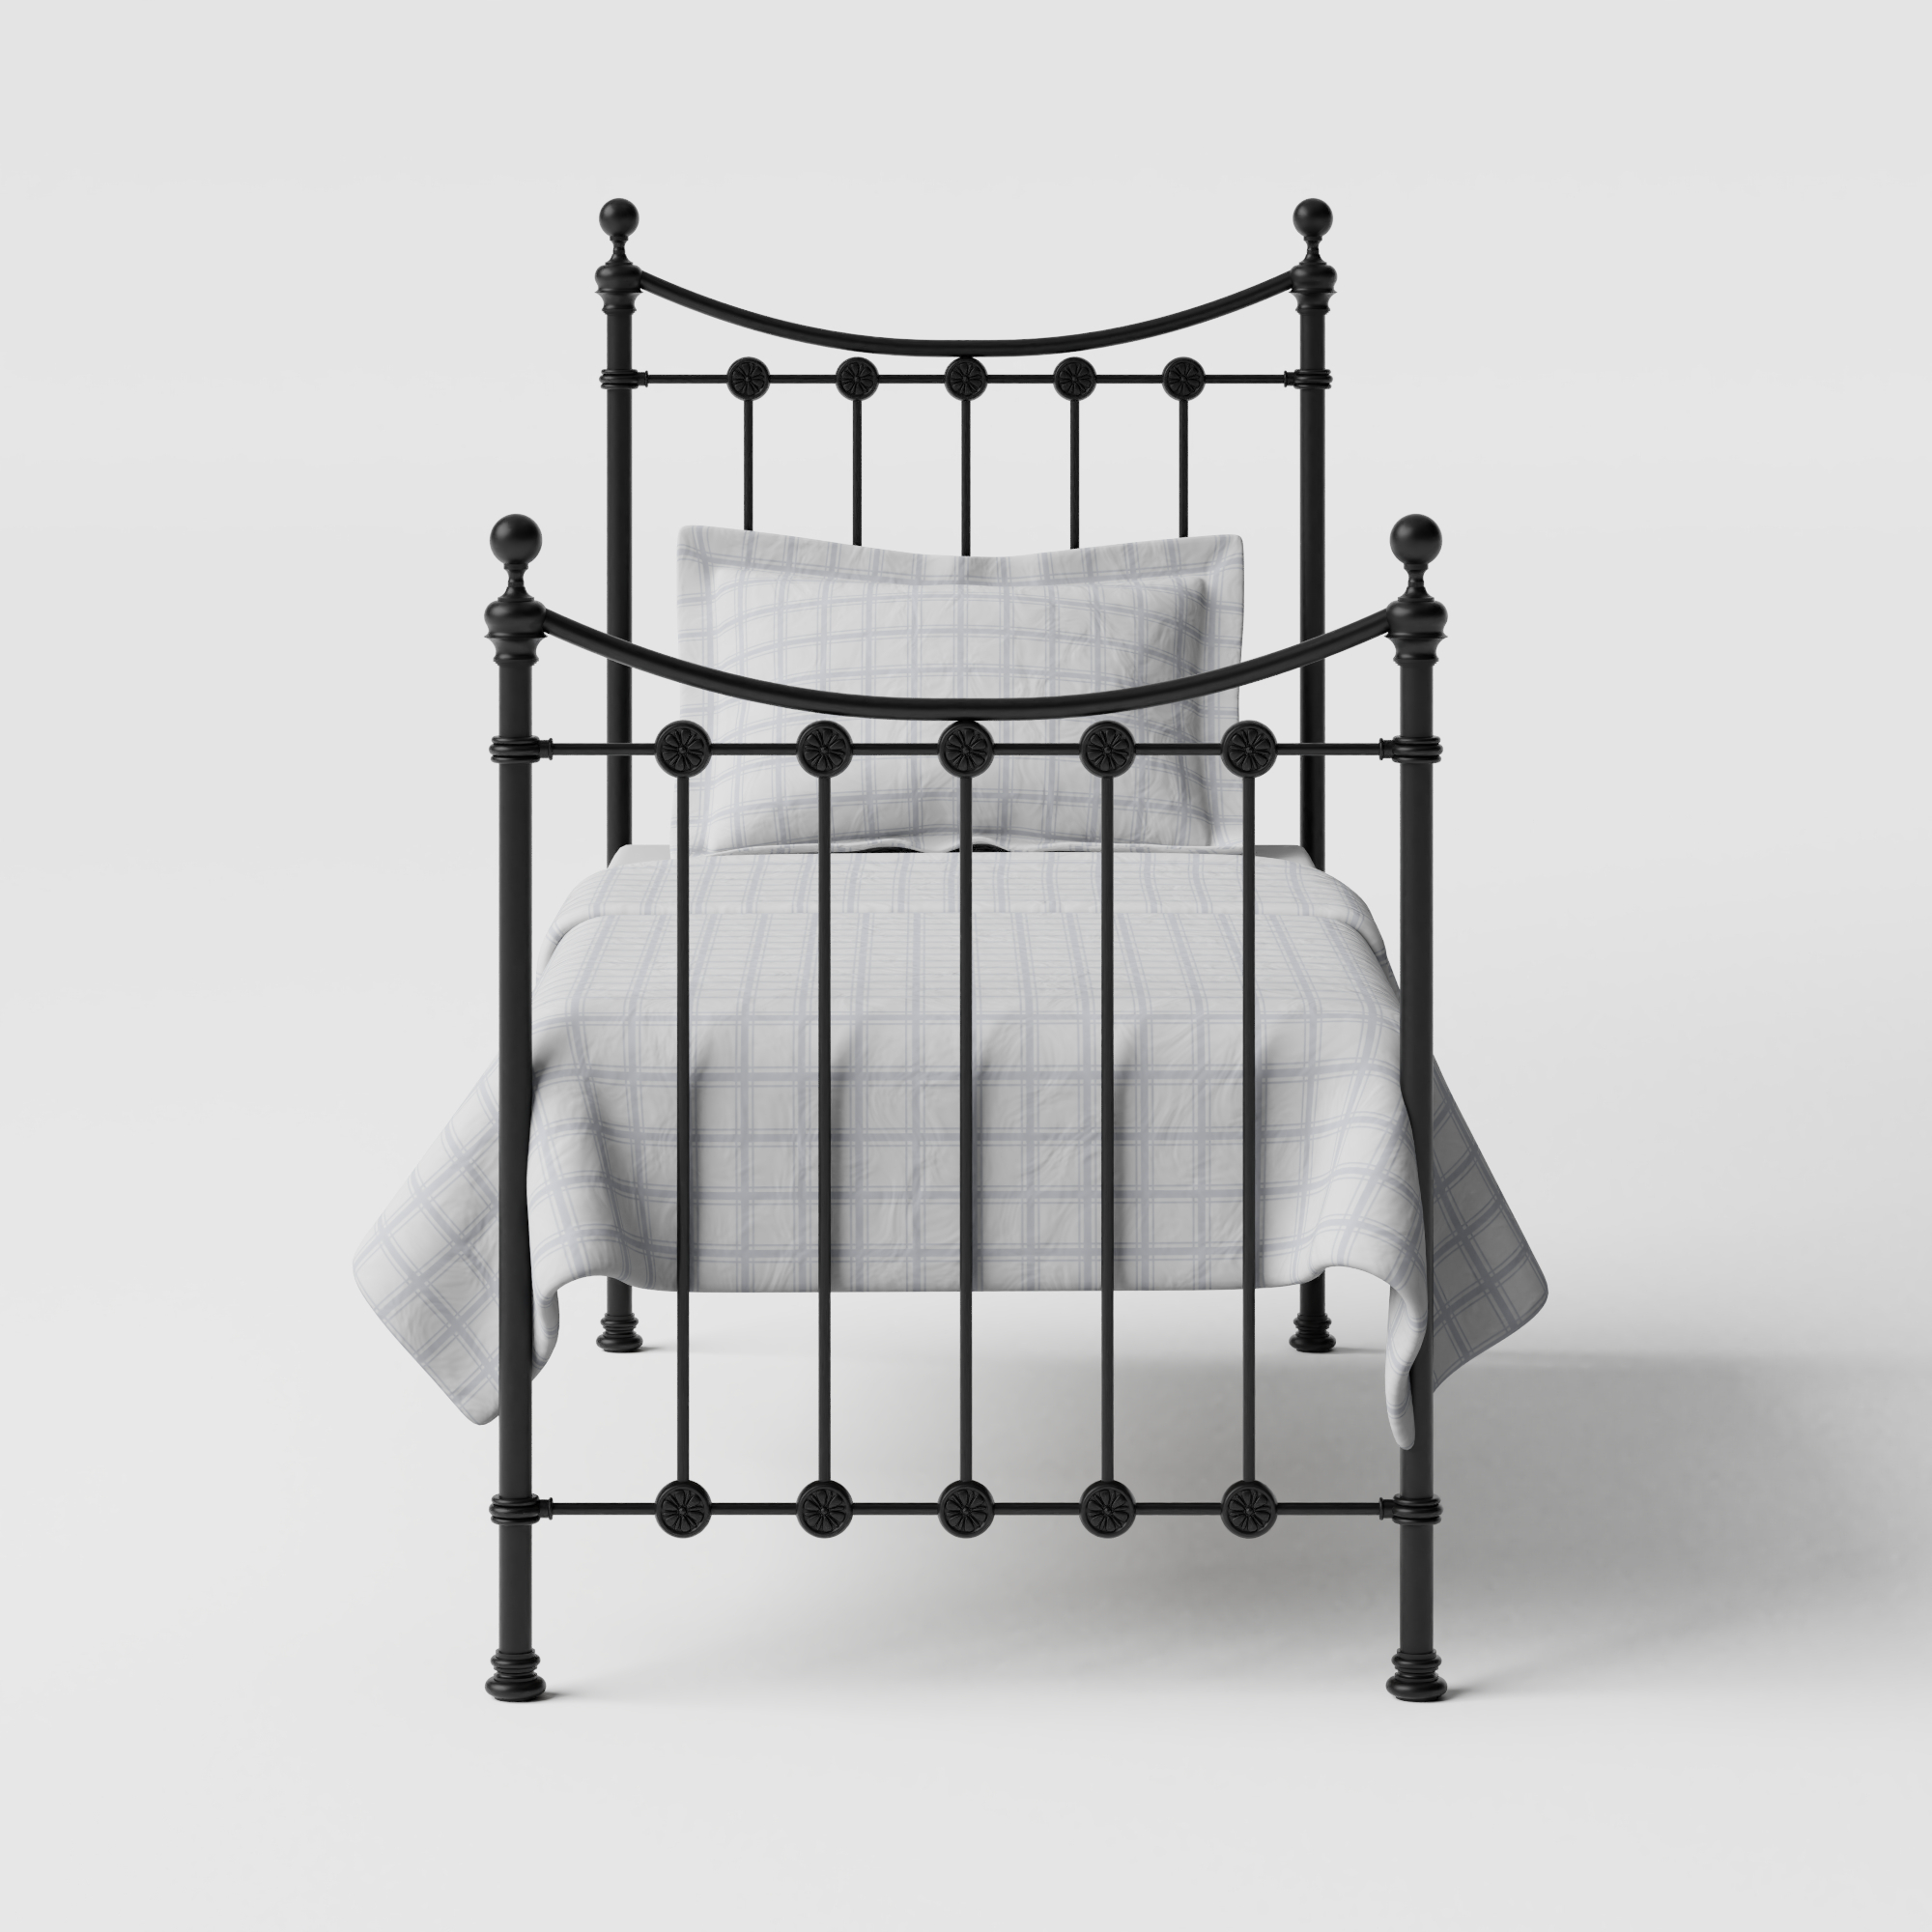 Carrick Solo iron/metal single bed in black